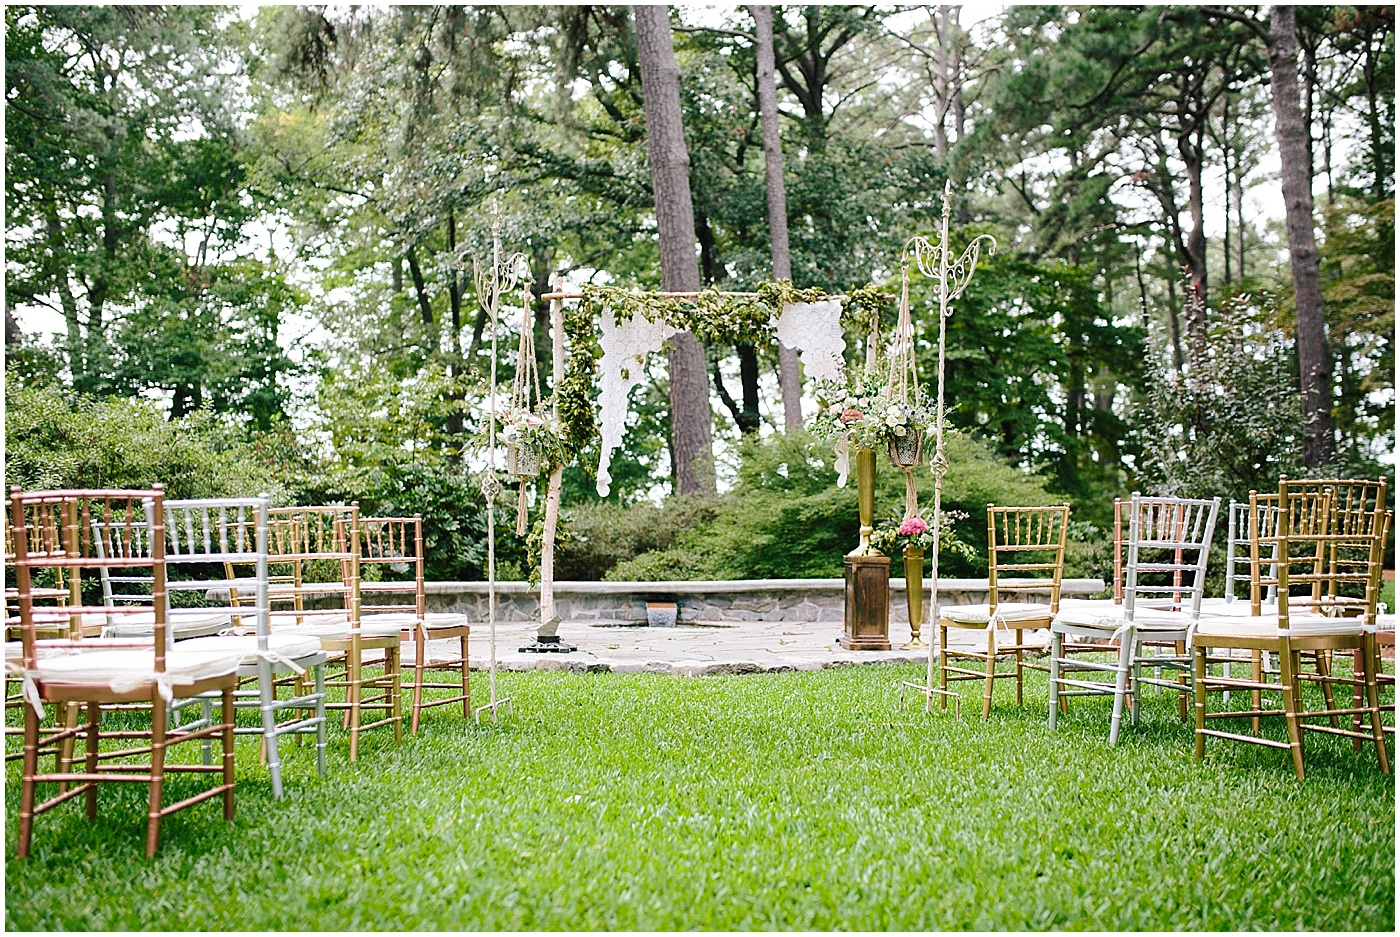 ... Norfolk_botanical_gardens_bohemian_wedding_0024  Norfolk_botanical_gardens_bohemian_wedding_0025  Norfolk_botanical_gardens_bohemian_wedding_0026 ...